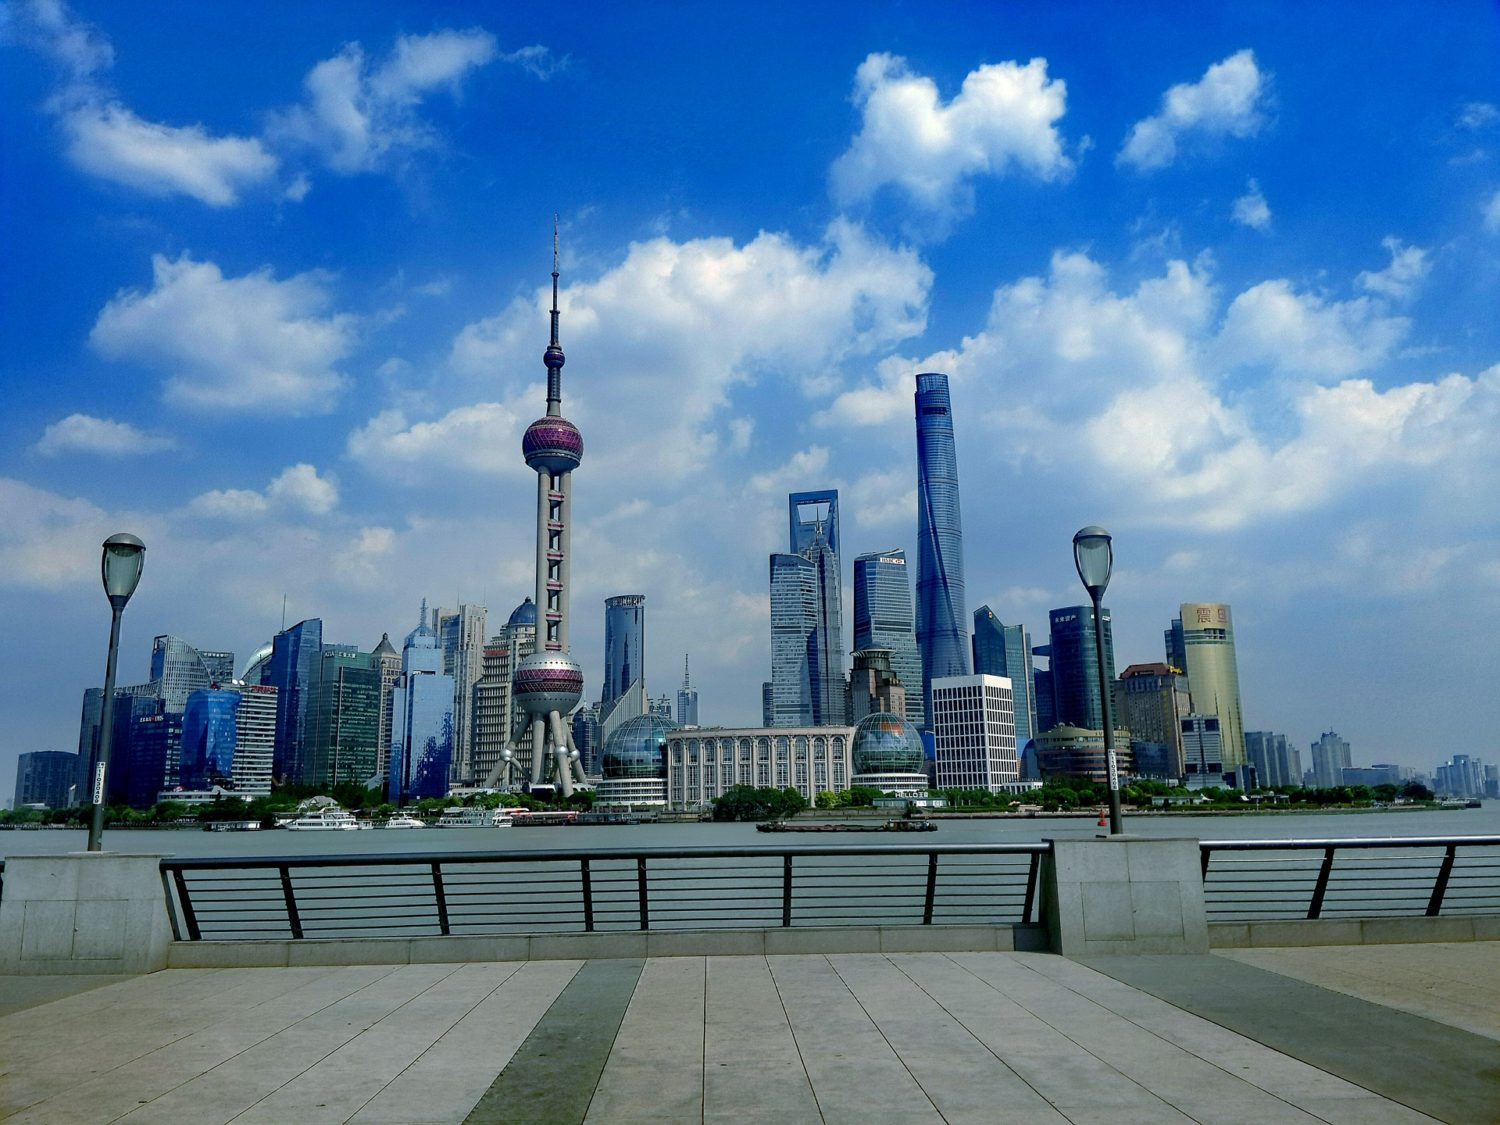 Oriental Pearl Tower, along the Huangpu River in Shanghai, China